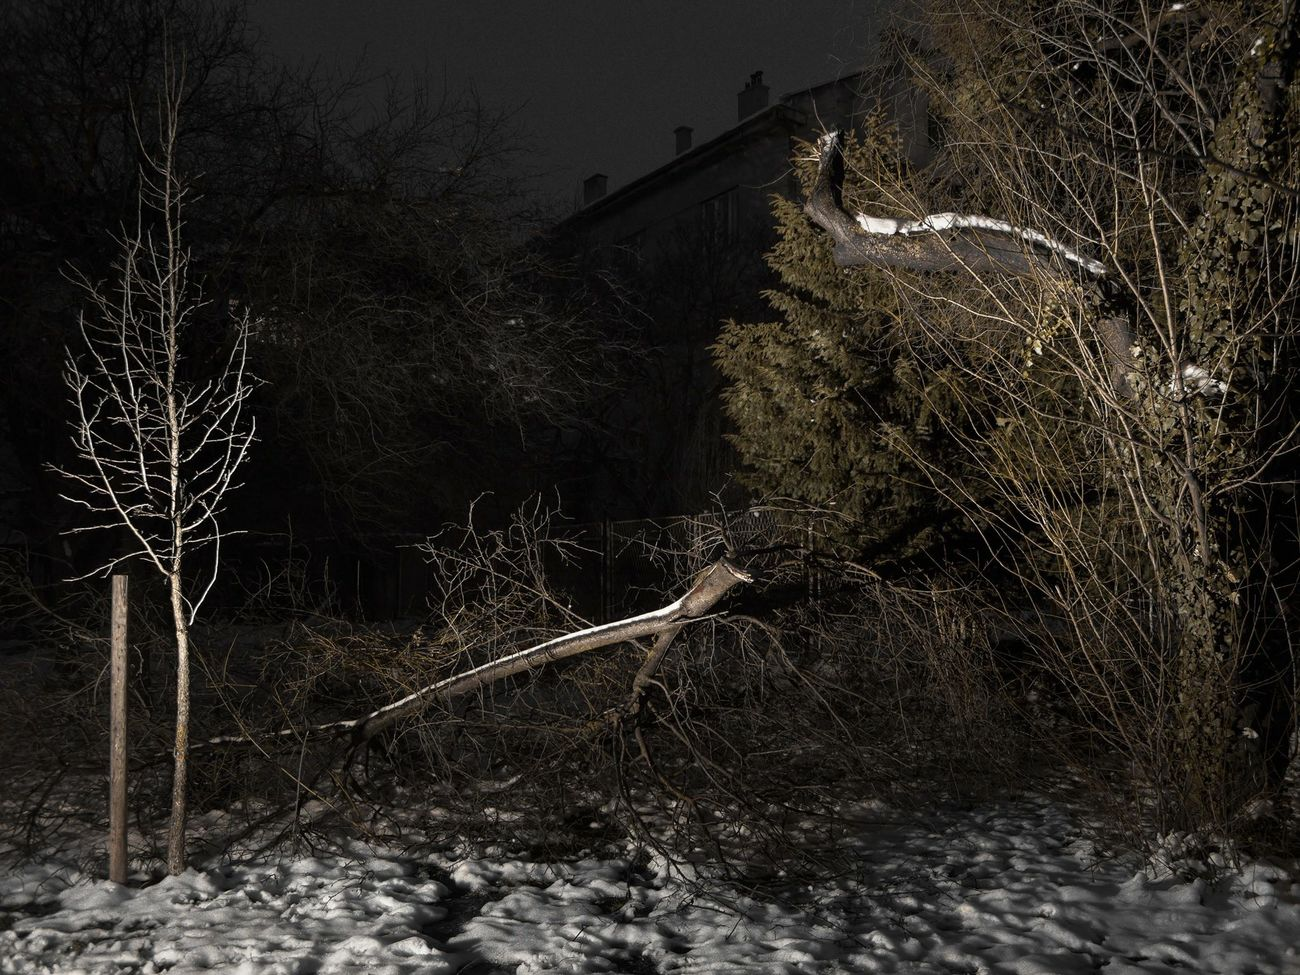 It's Cold Outside Winter Wintertime Snow Broken Brench Depression Flash City Urban Landscape Night Horror Trees TreePorn